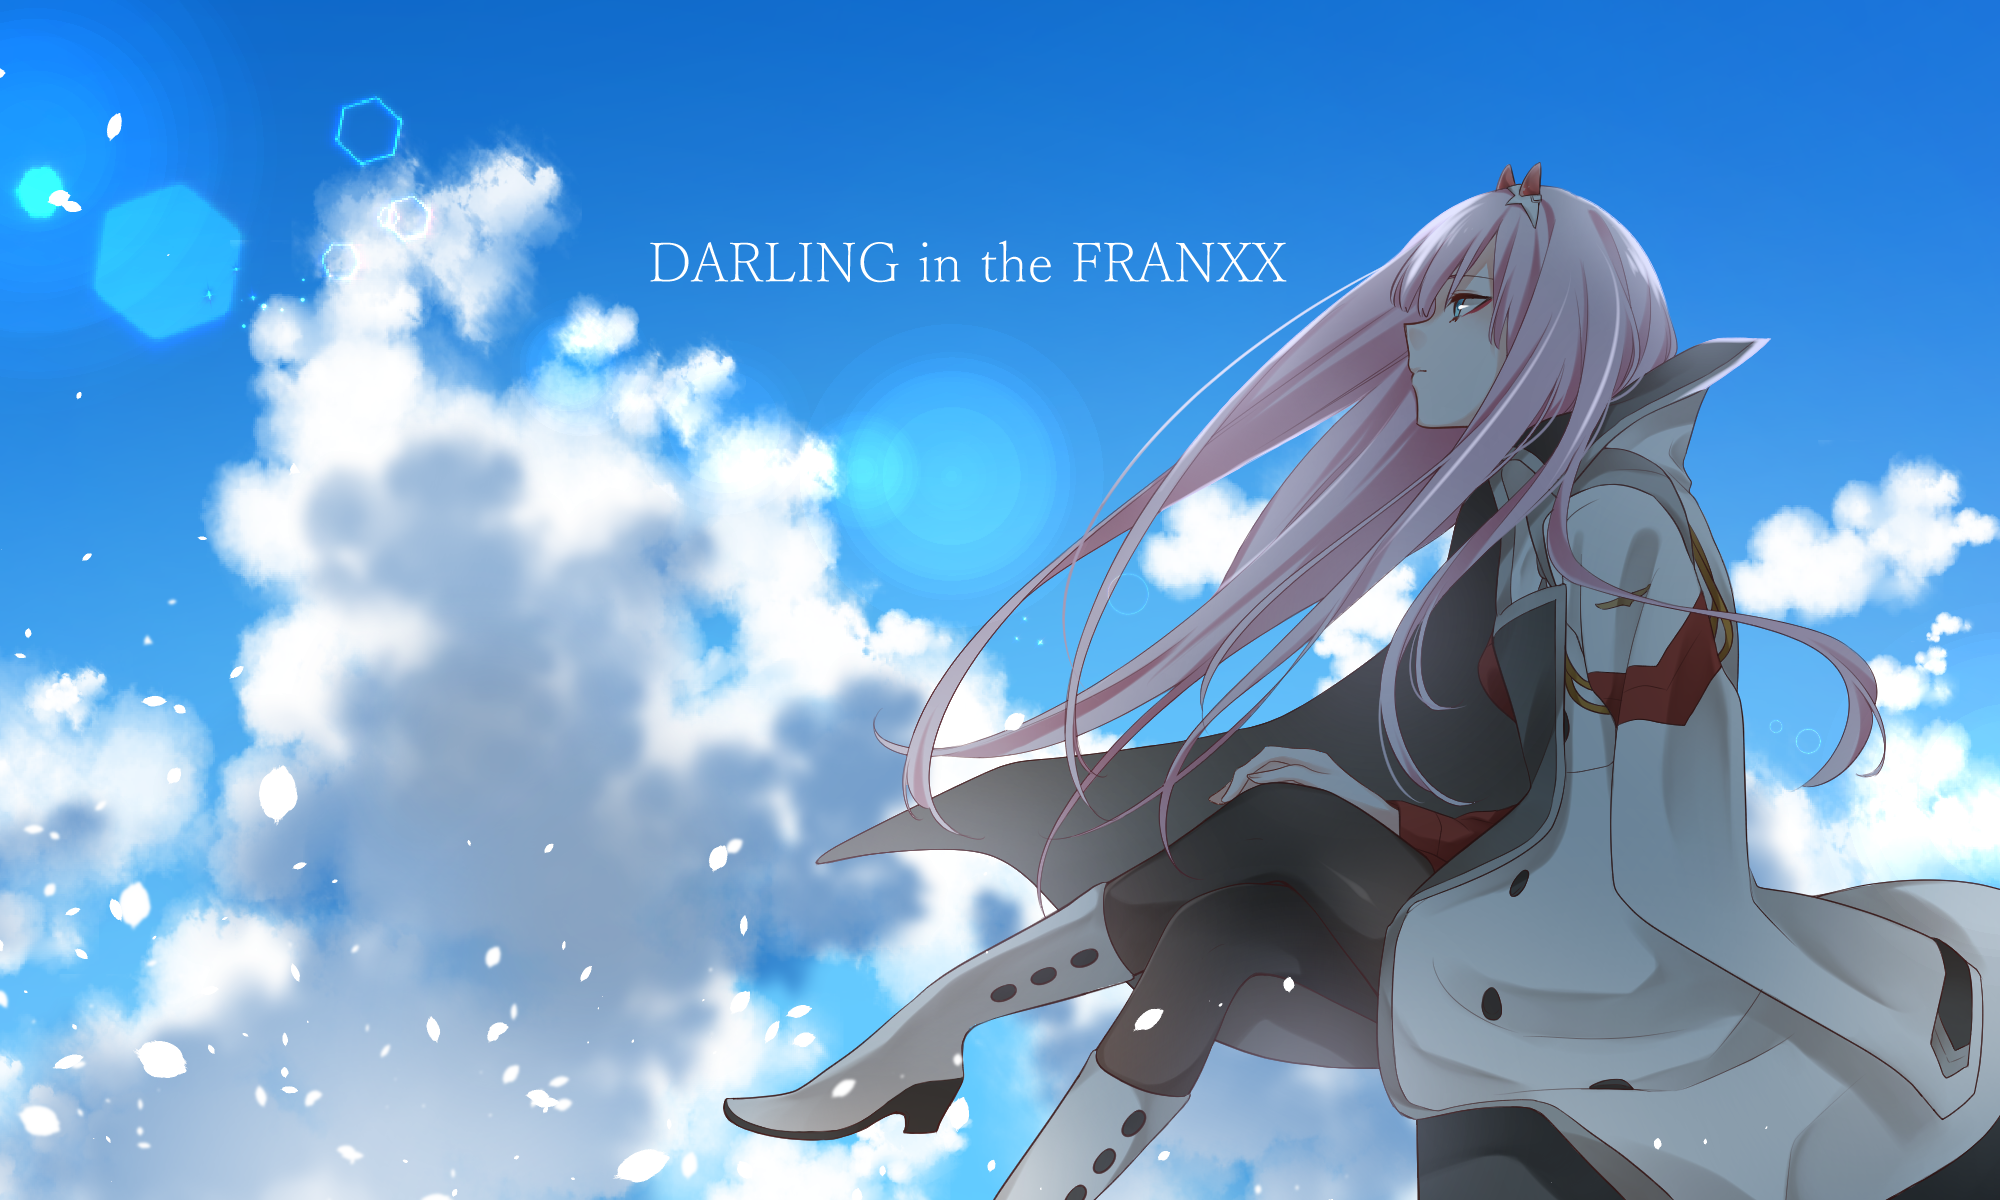 427 darling in the franxx hd wallpapers | background images